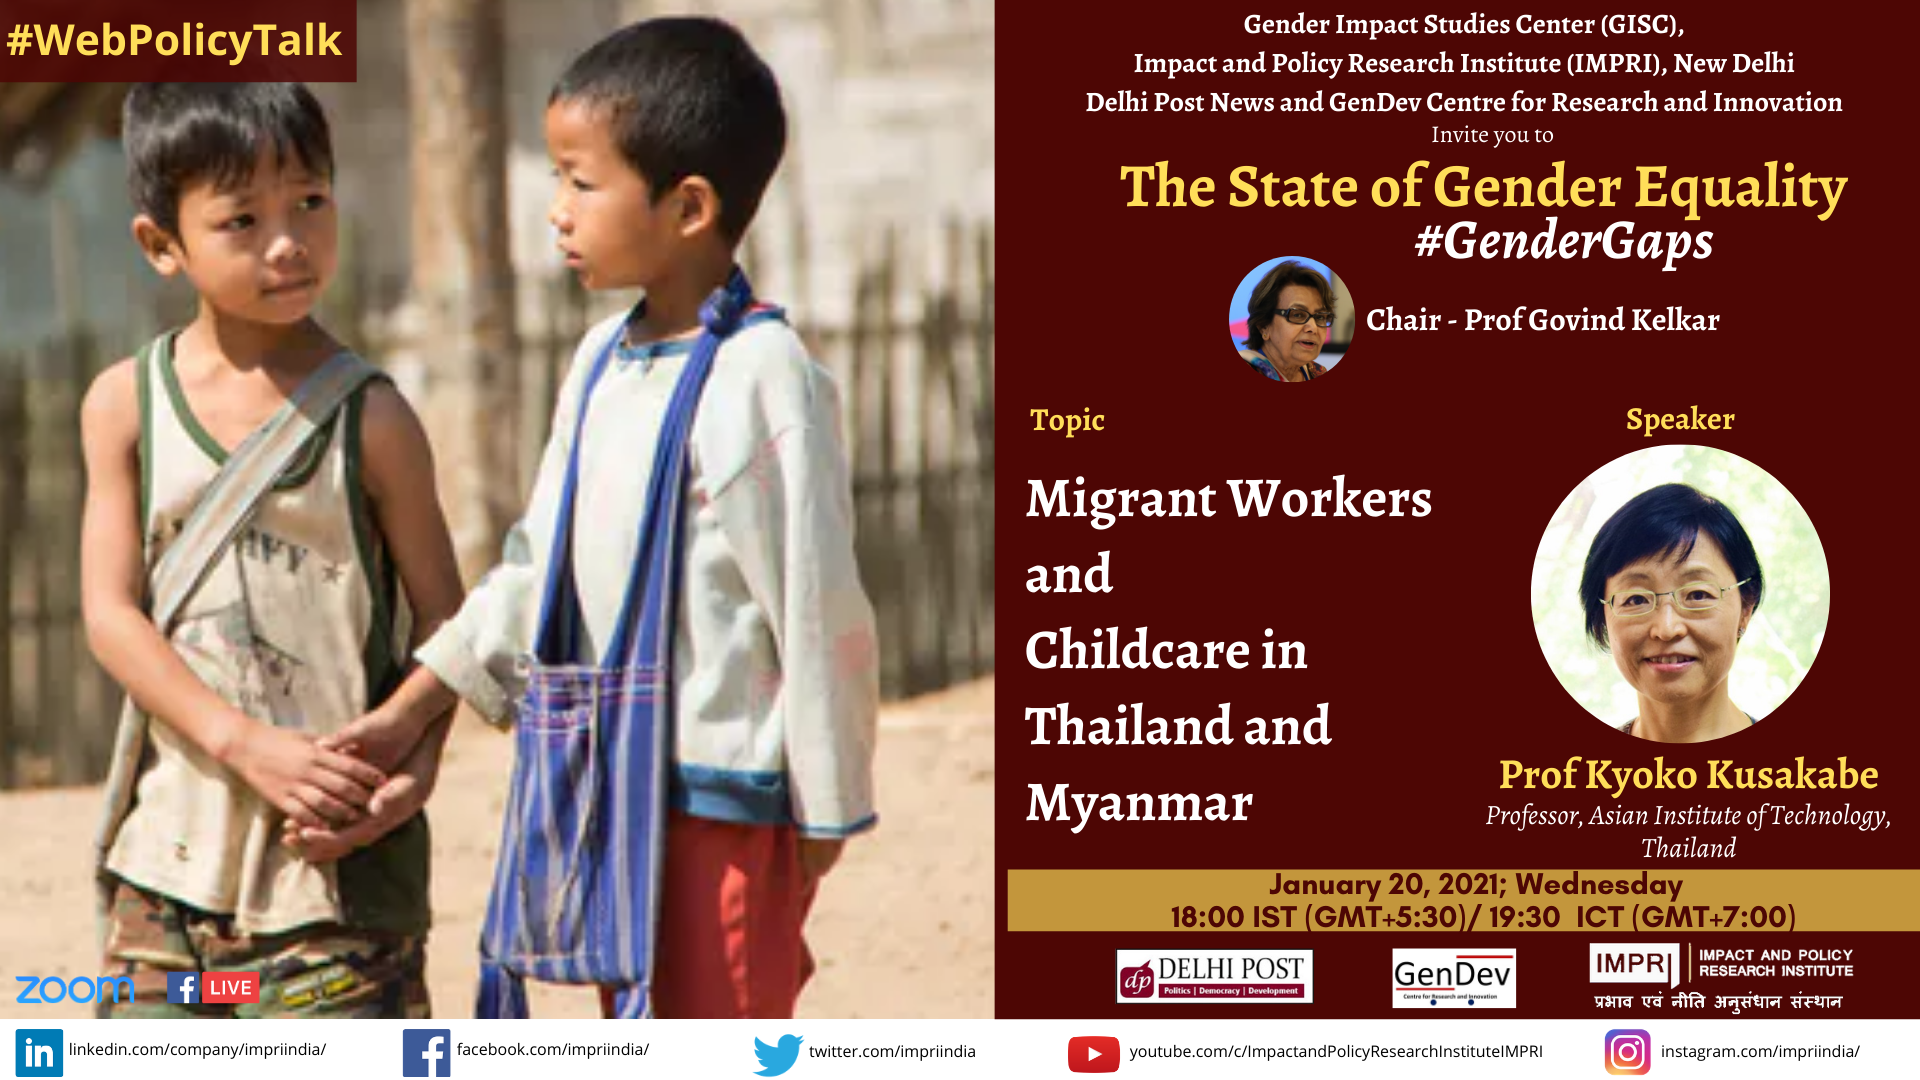 Kyoko Kusakabe Migrant Workers and Childcare in Thailand and Myanmar 2